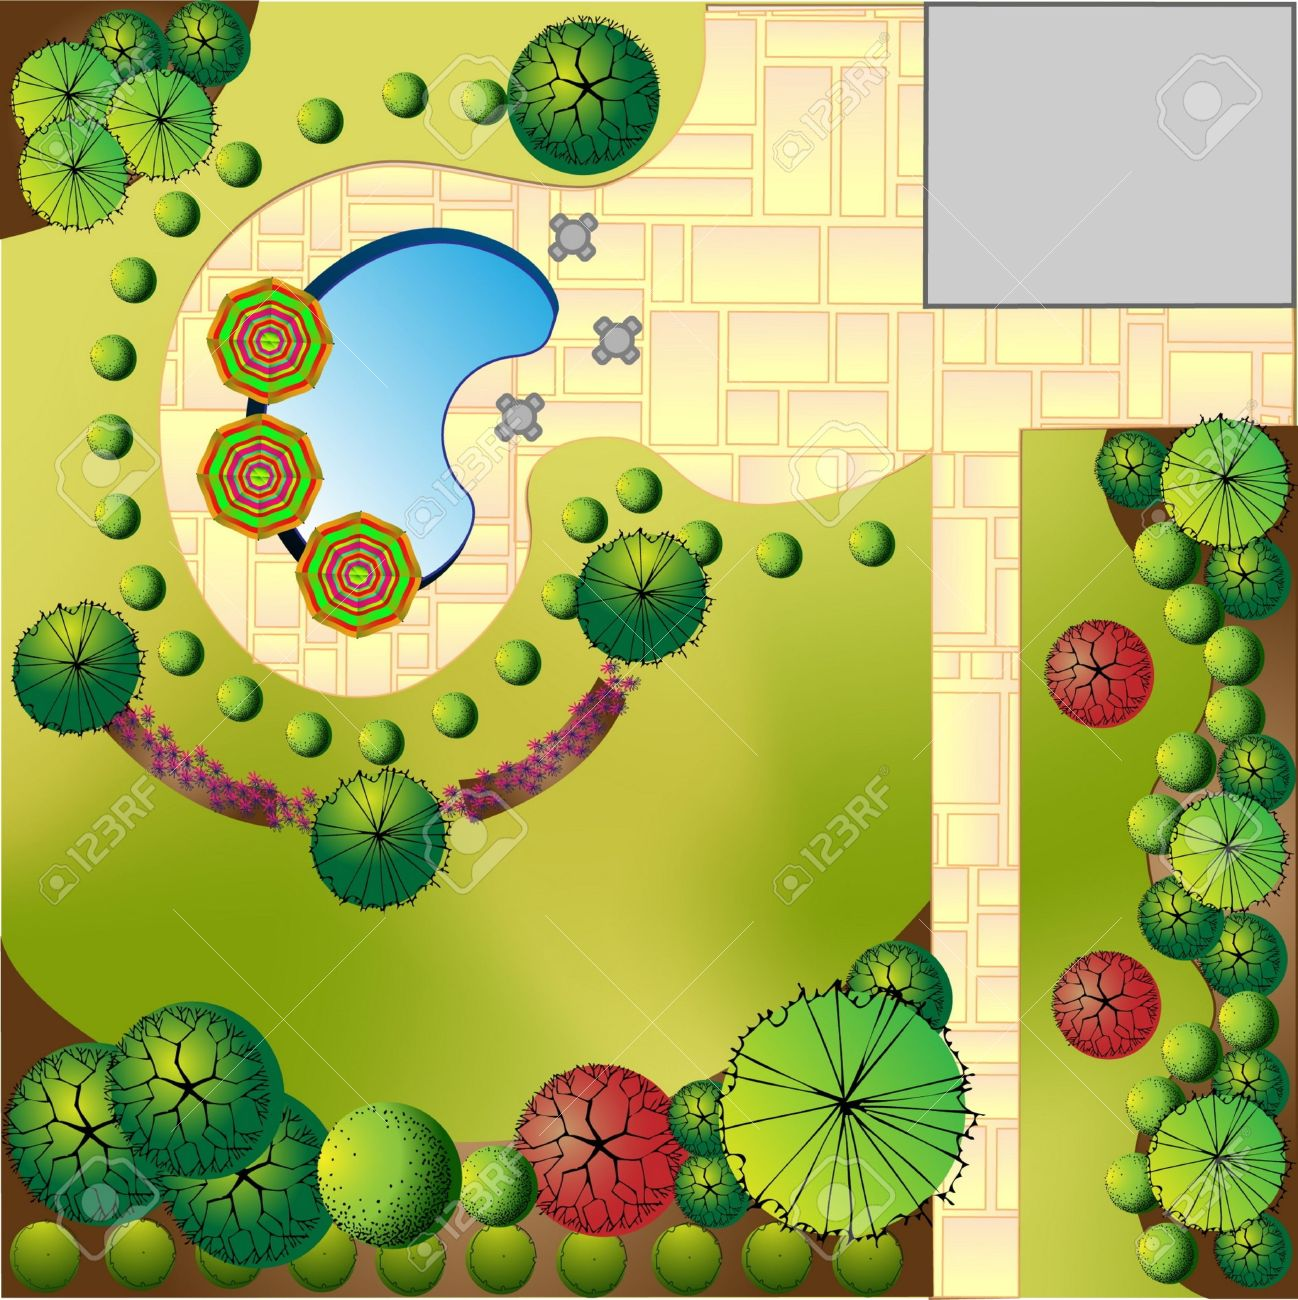 Landscaped garden clipart 20 free Cliparts   Download ...